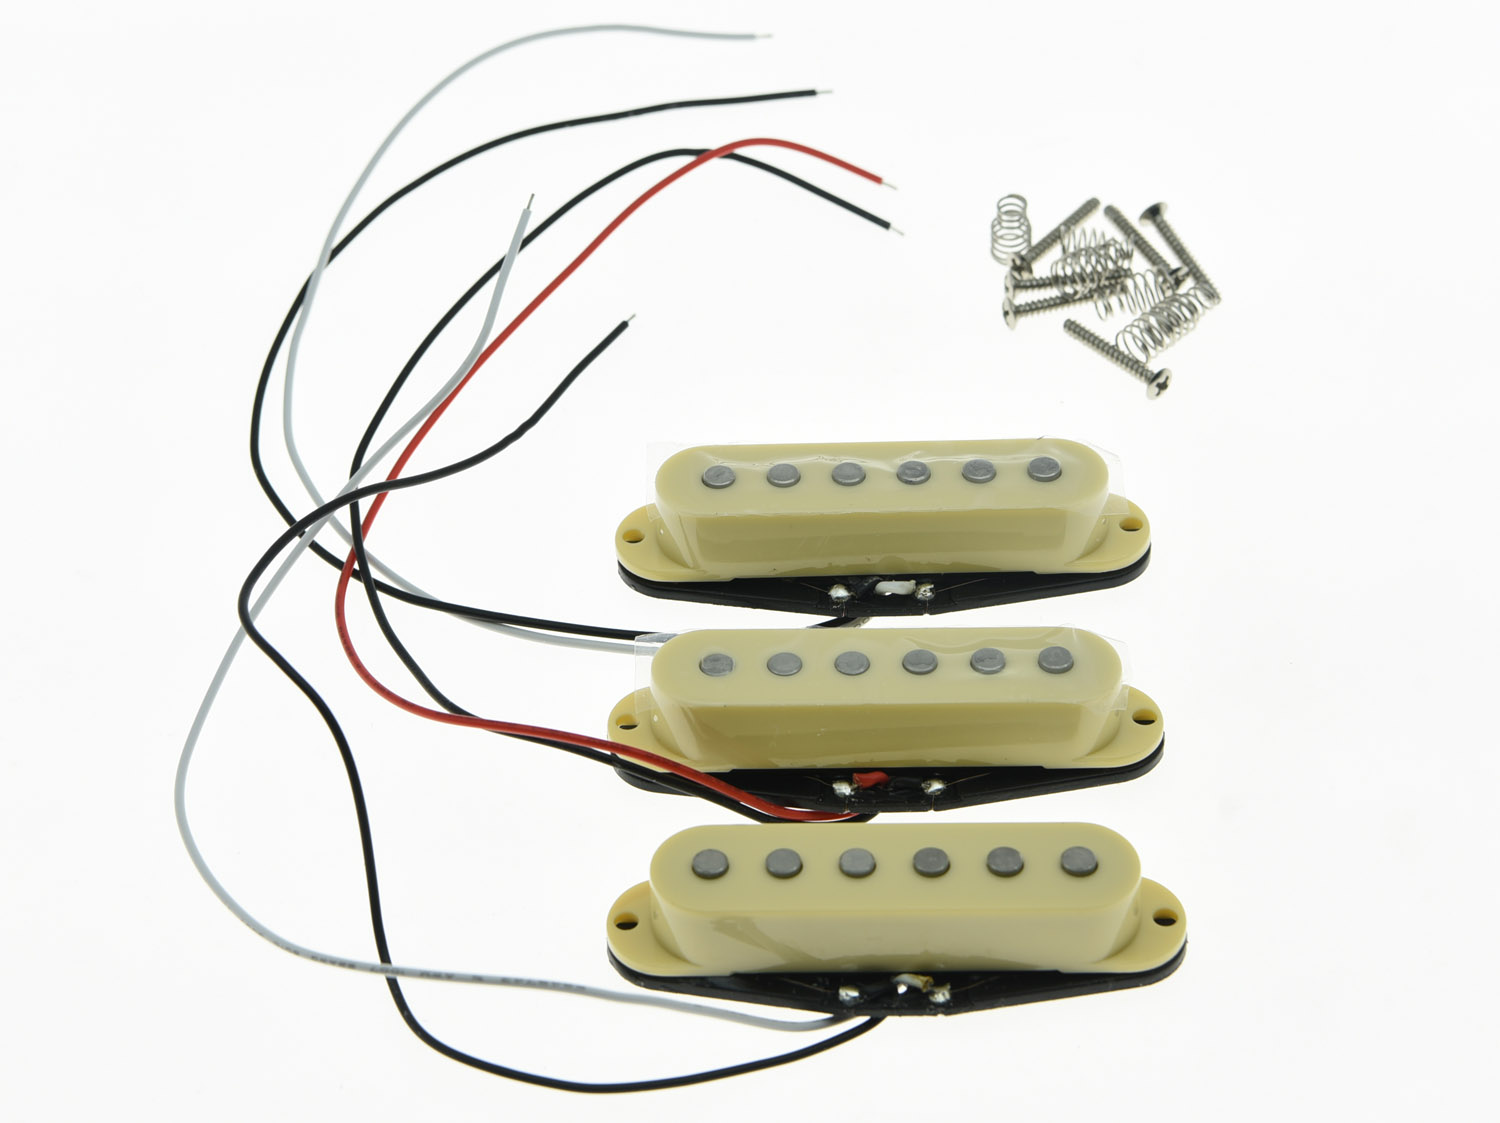 KAISH 3x N/M/B Cream Alnico 5 Single Coil Pickups High Output Sound Strat SSS Pickup tsai hotsale vintage voice single coil pickup for stratocaster ceramic bobbin alnico single coil guitar pickup staggered pole